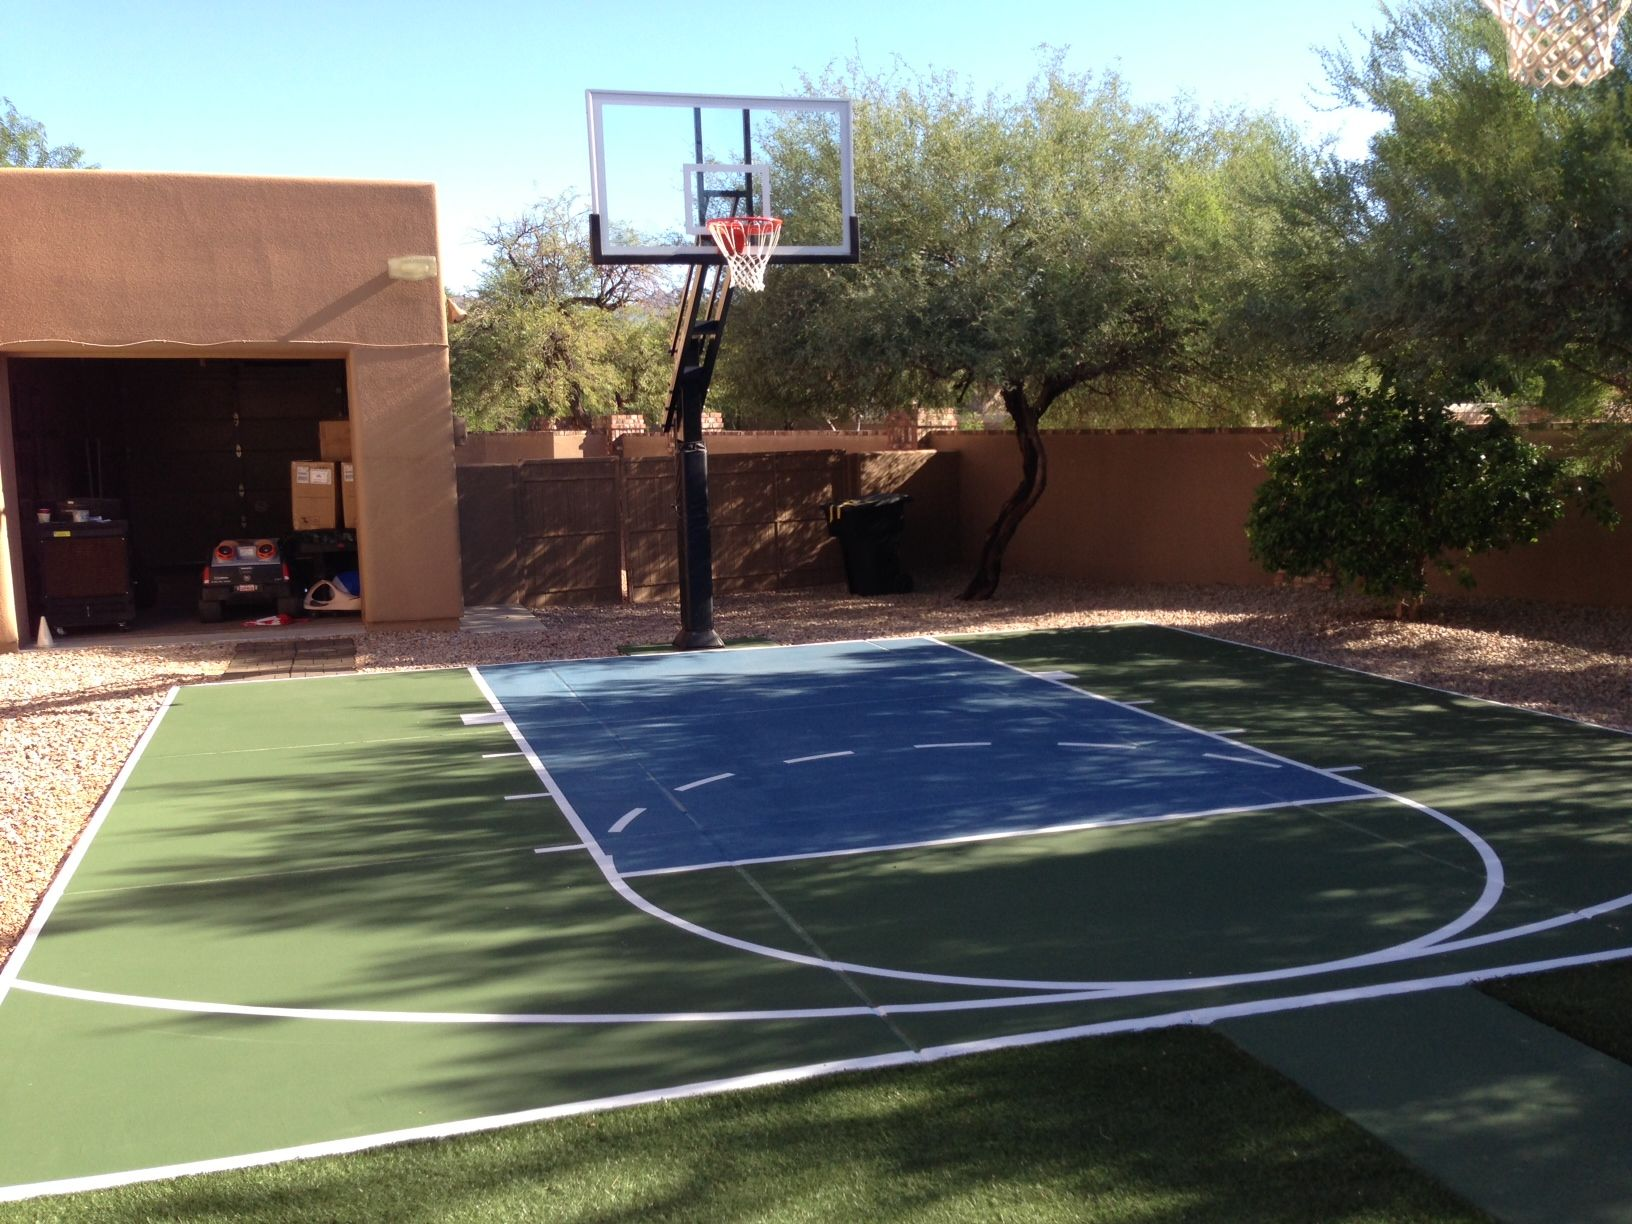 Pin by Pro Dunk Hoops on Pro Dunk Hoops Basketball Goals ...